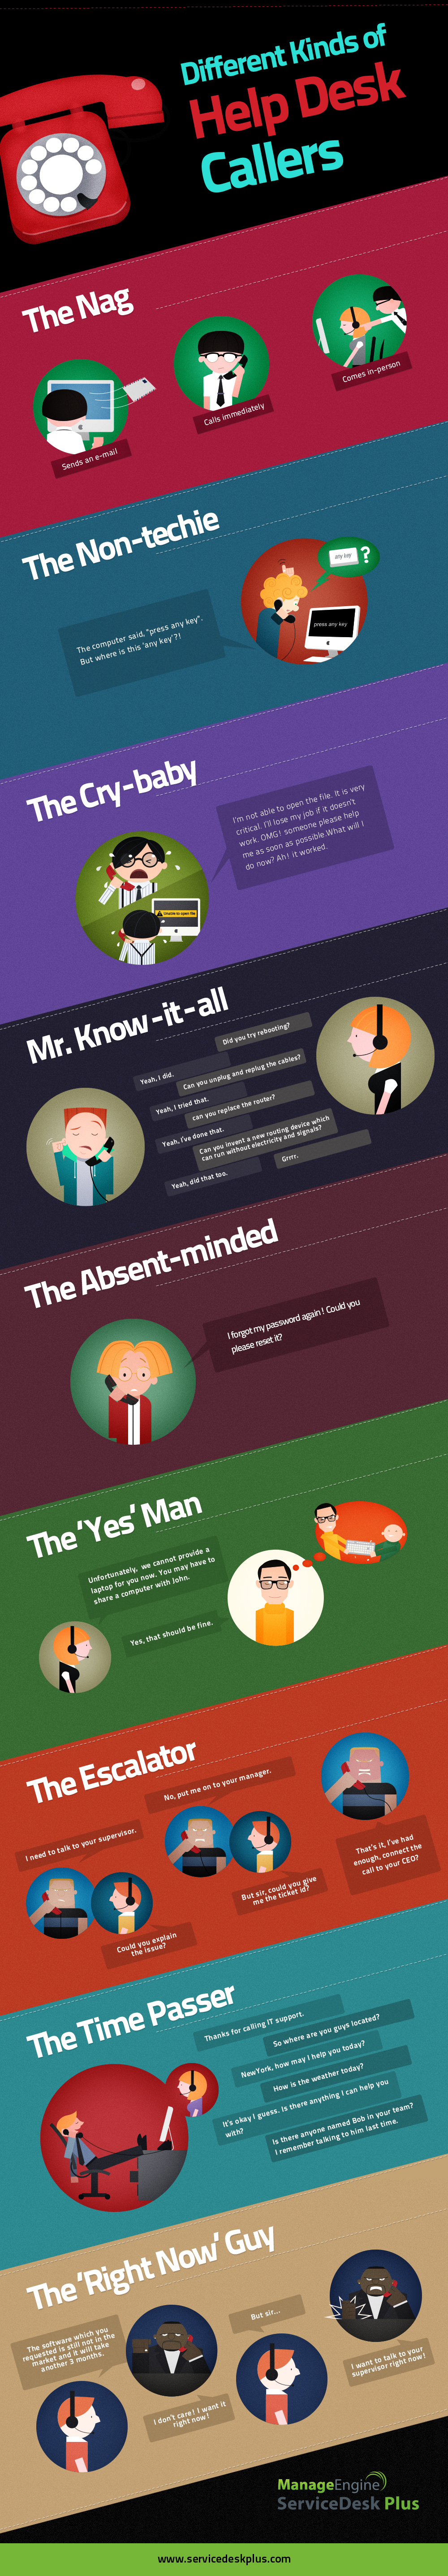 The Typical Help Desk Caller: 9 Personality Types - Infographic